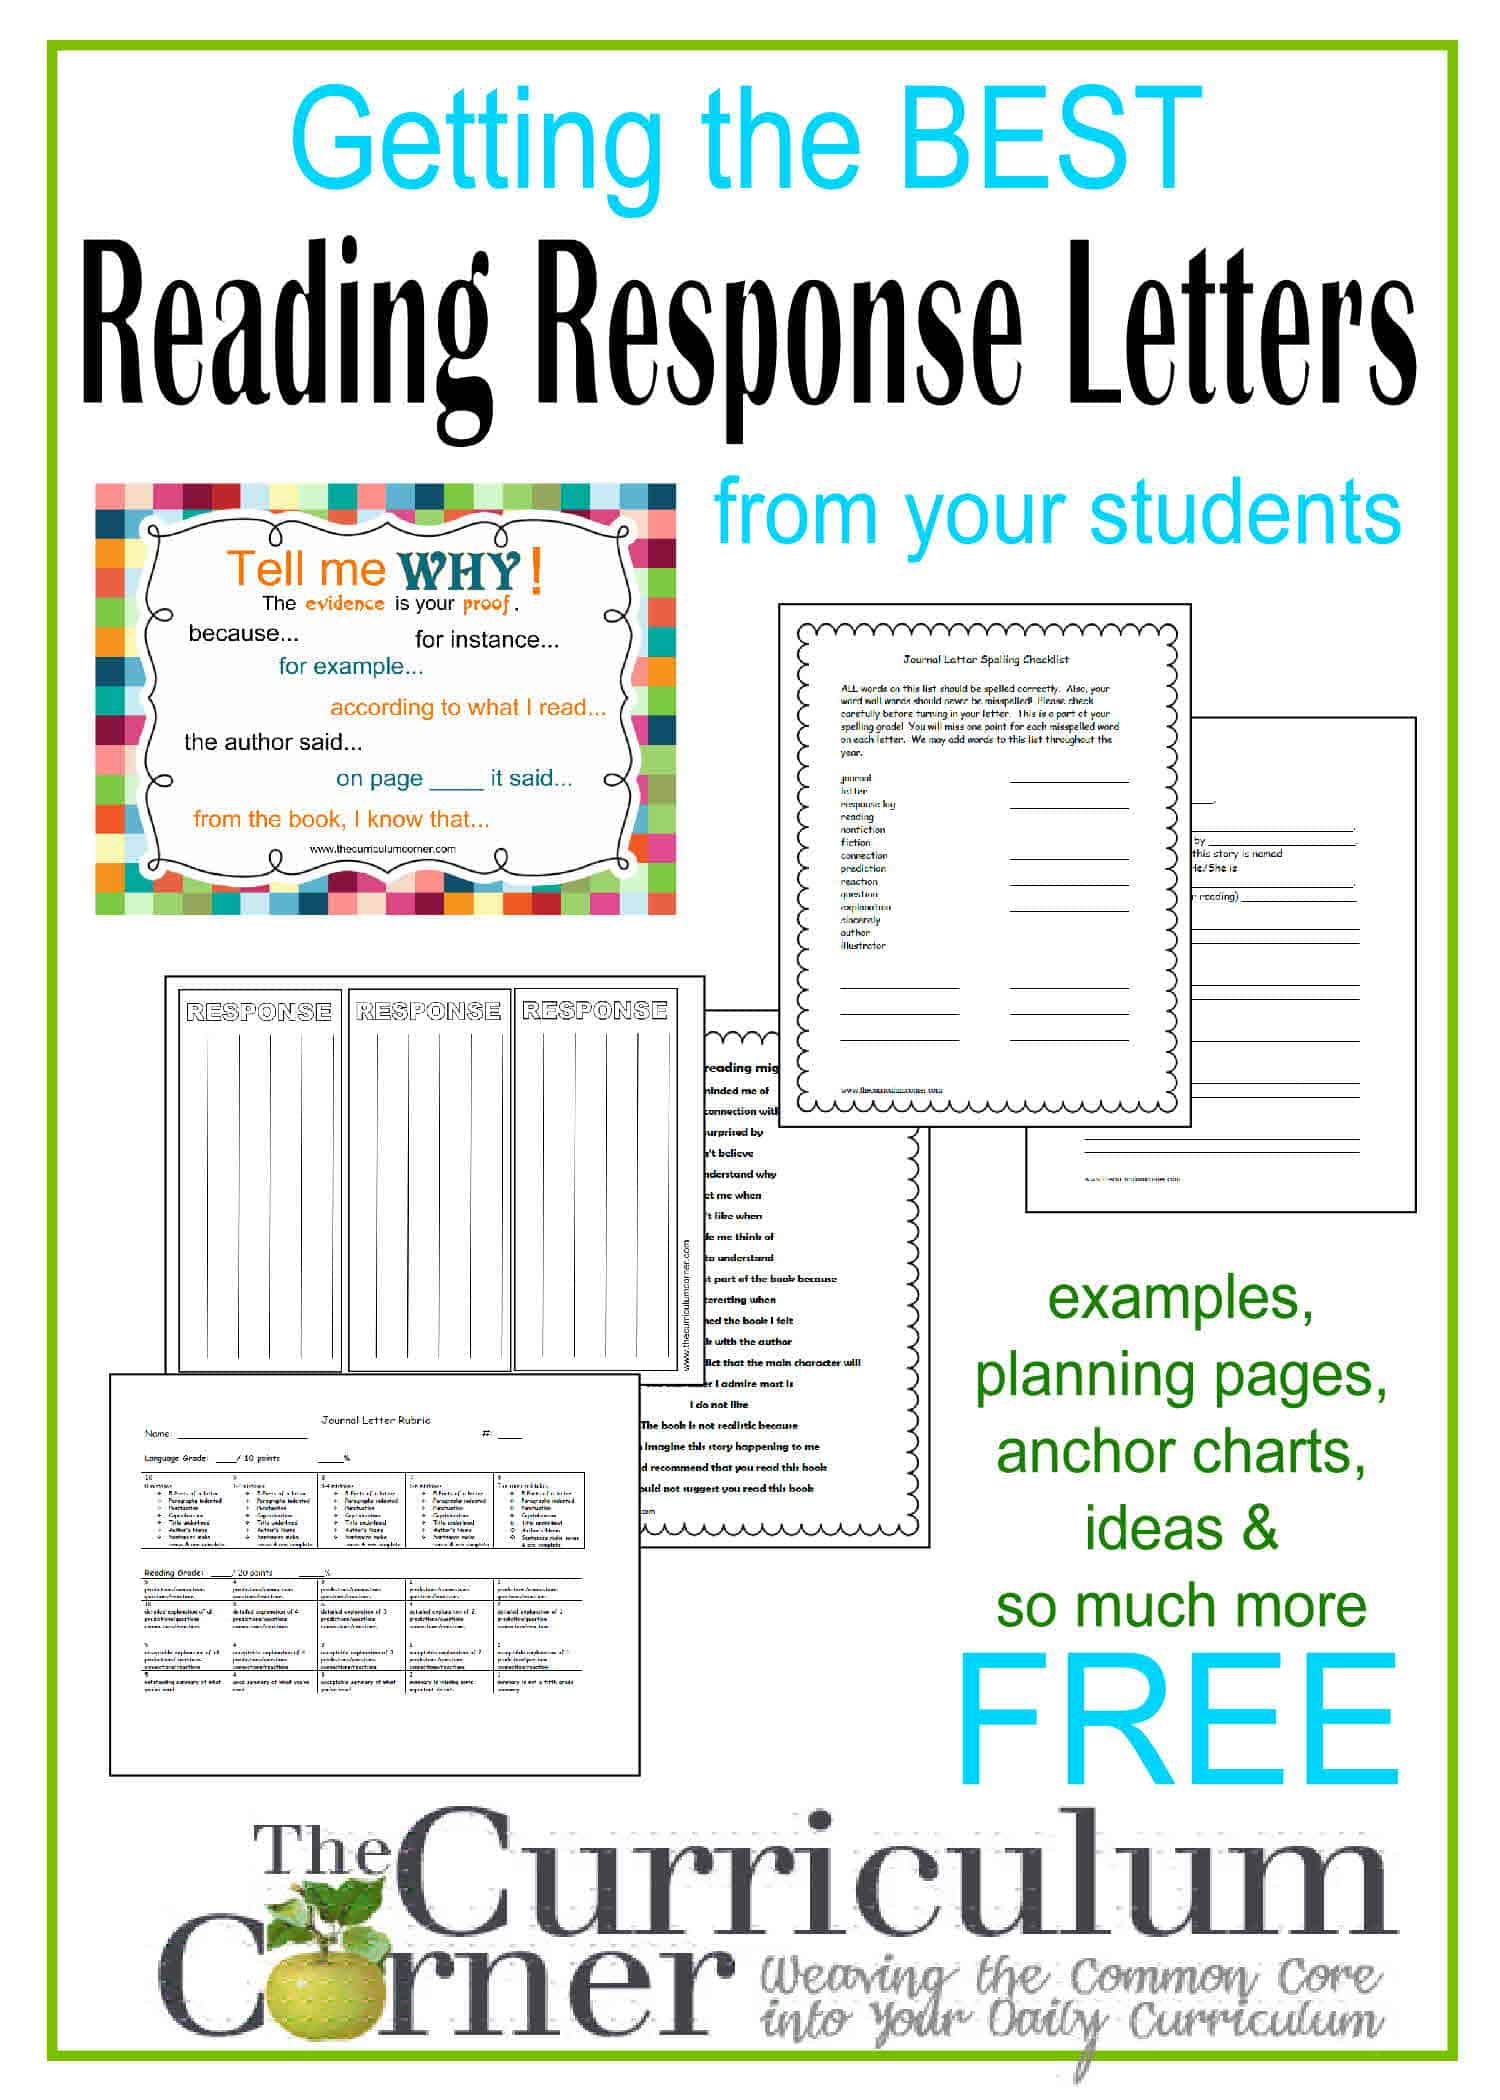 Reading Response Letters - The Curriculum Corner 4-5-6